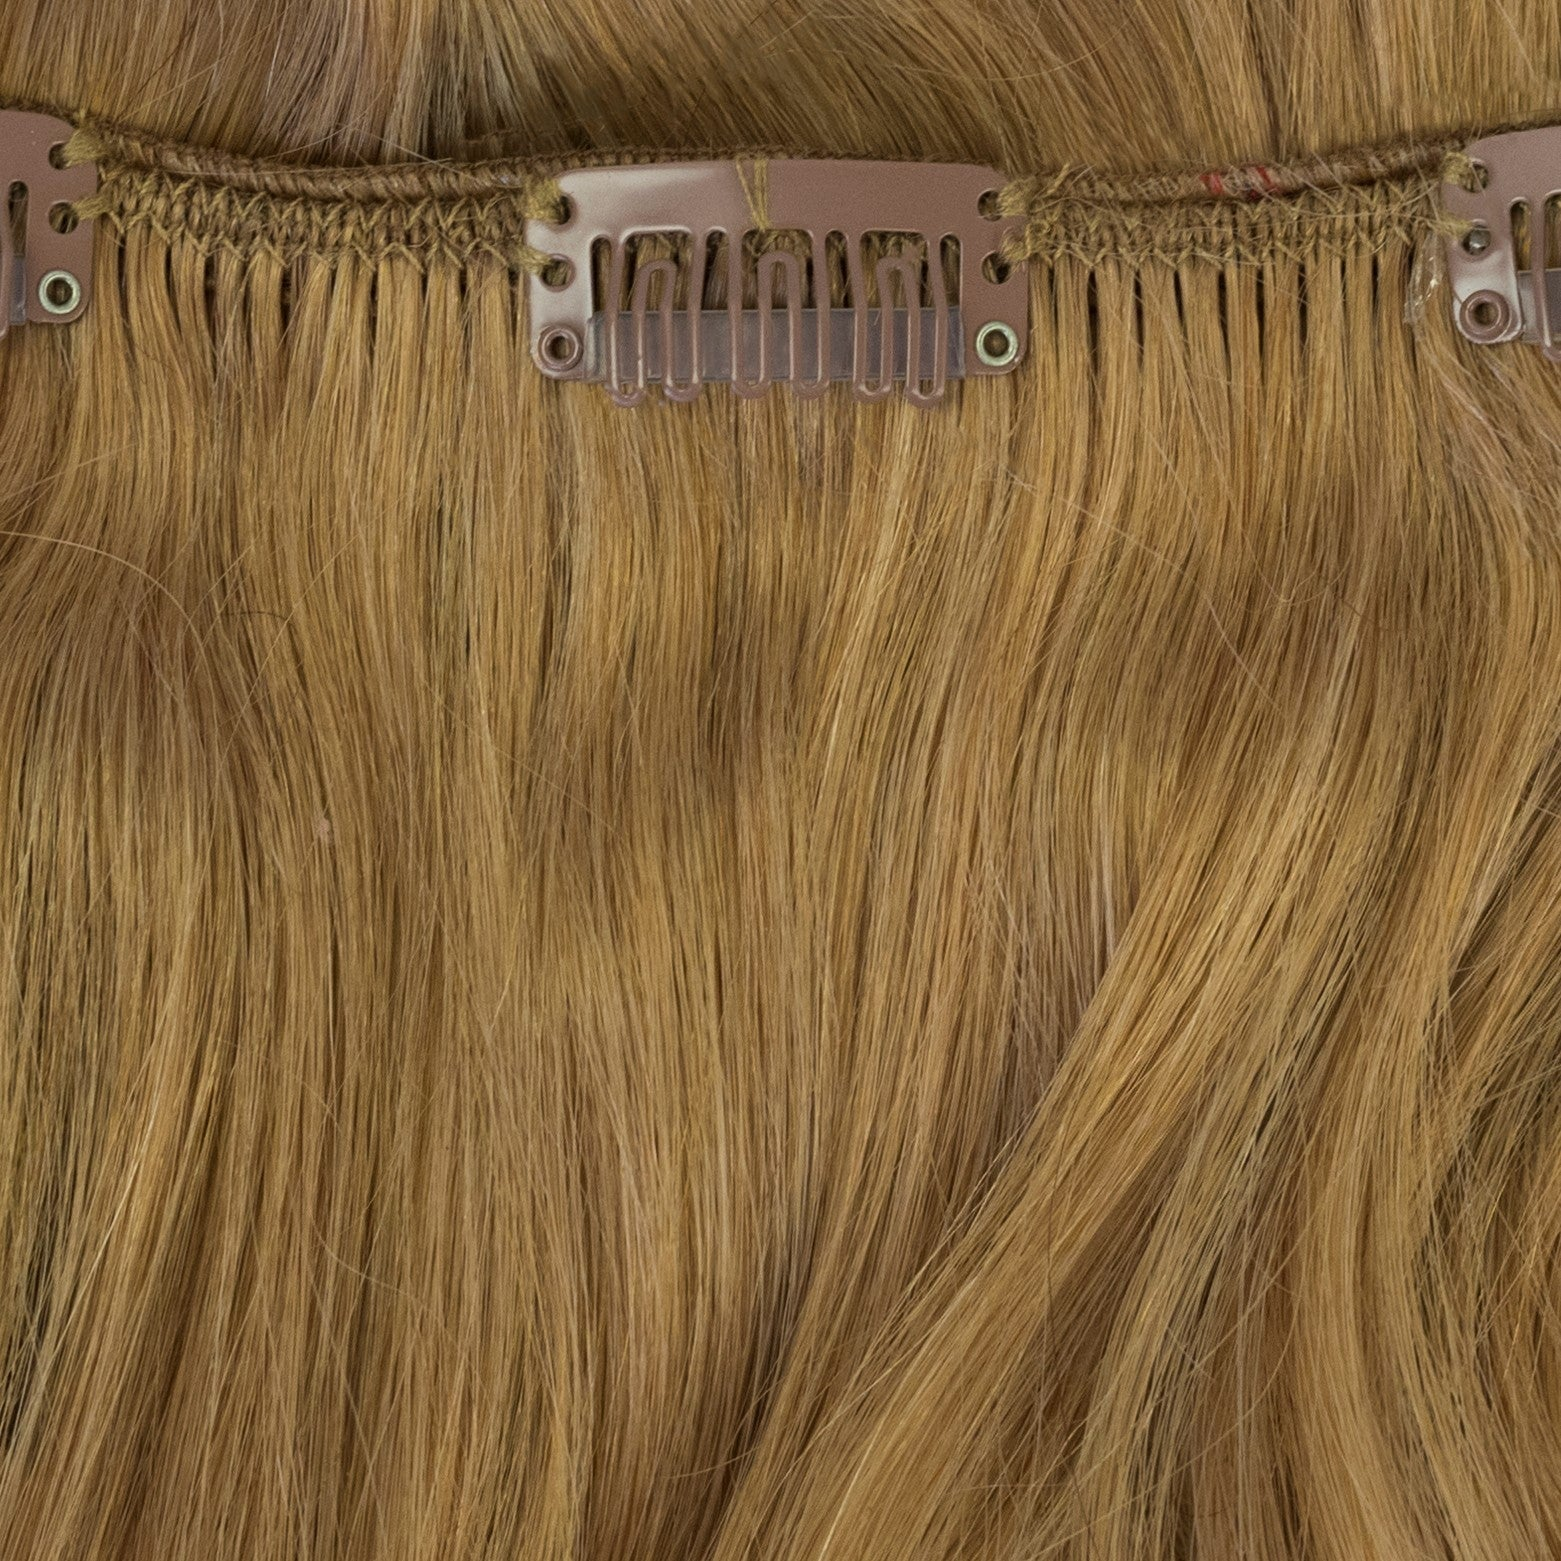 strawberry gold blonde hair extensions clip-in